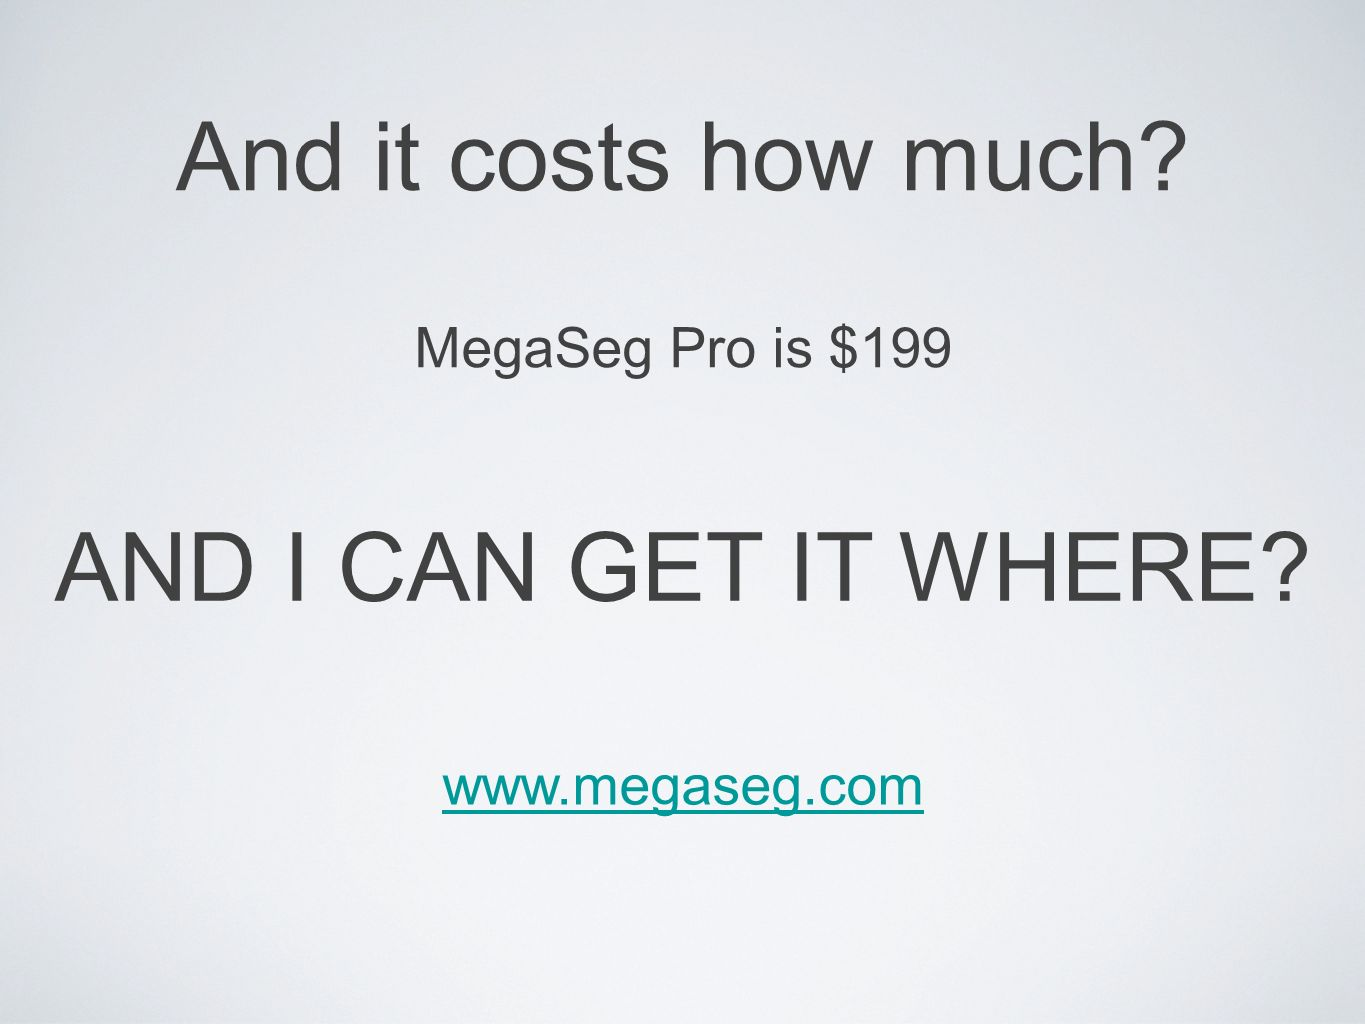 And it costs how much MegaSeg Pro is $199 AND I CAN GET IT WHERE